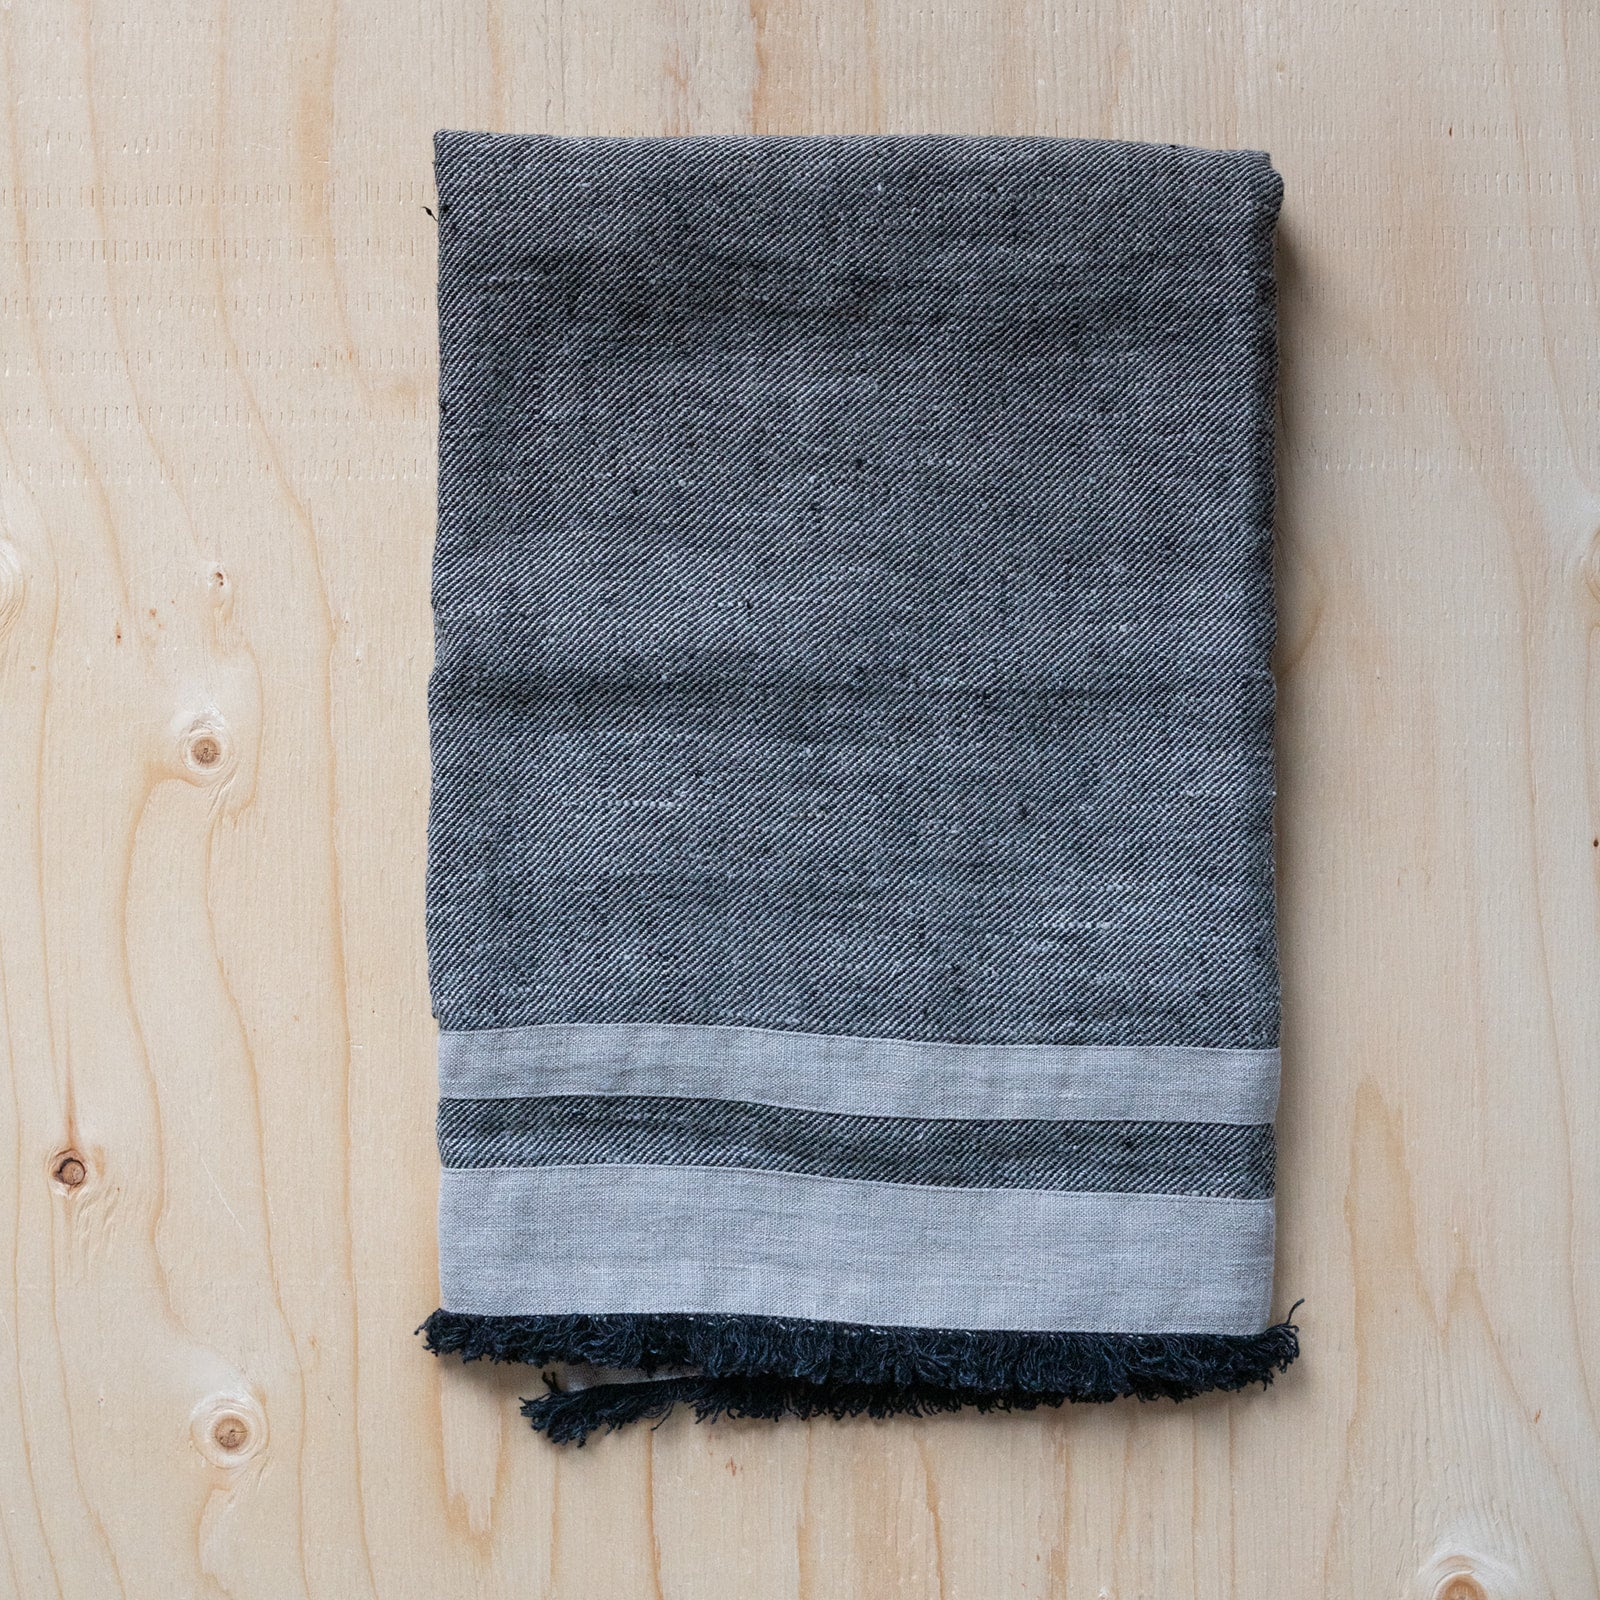 Charcoal Linen Bath Towel - Rug & Weave